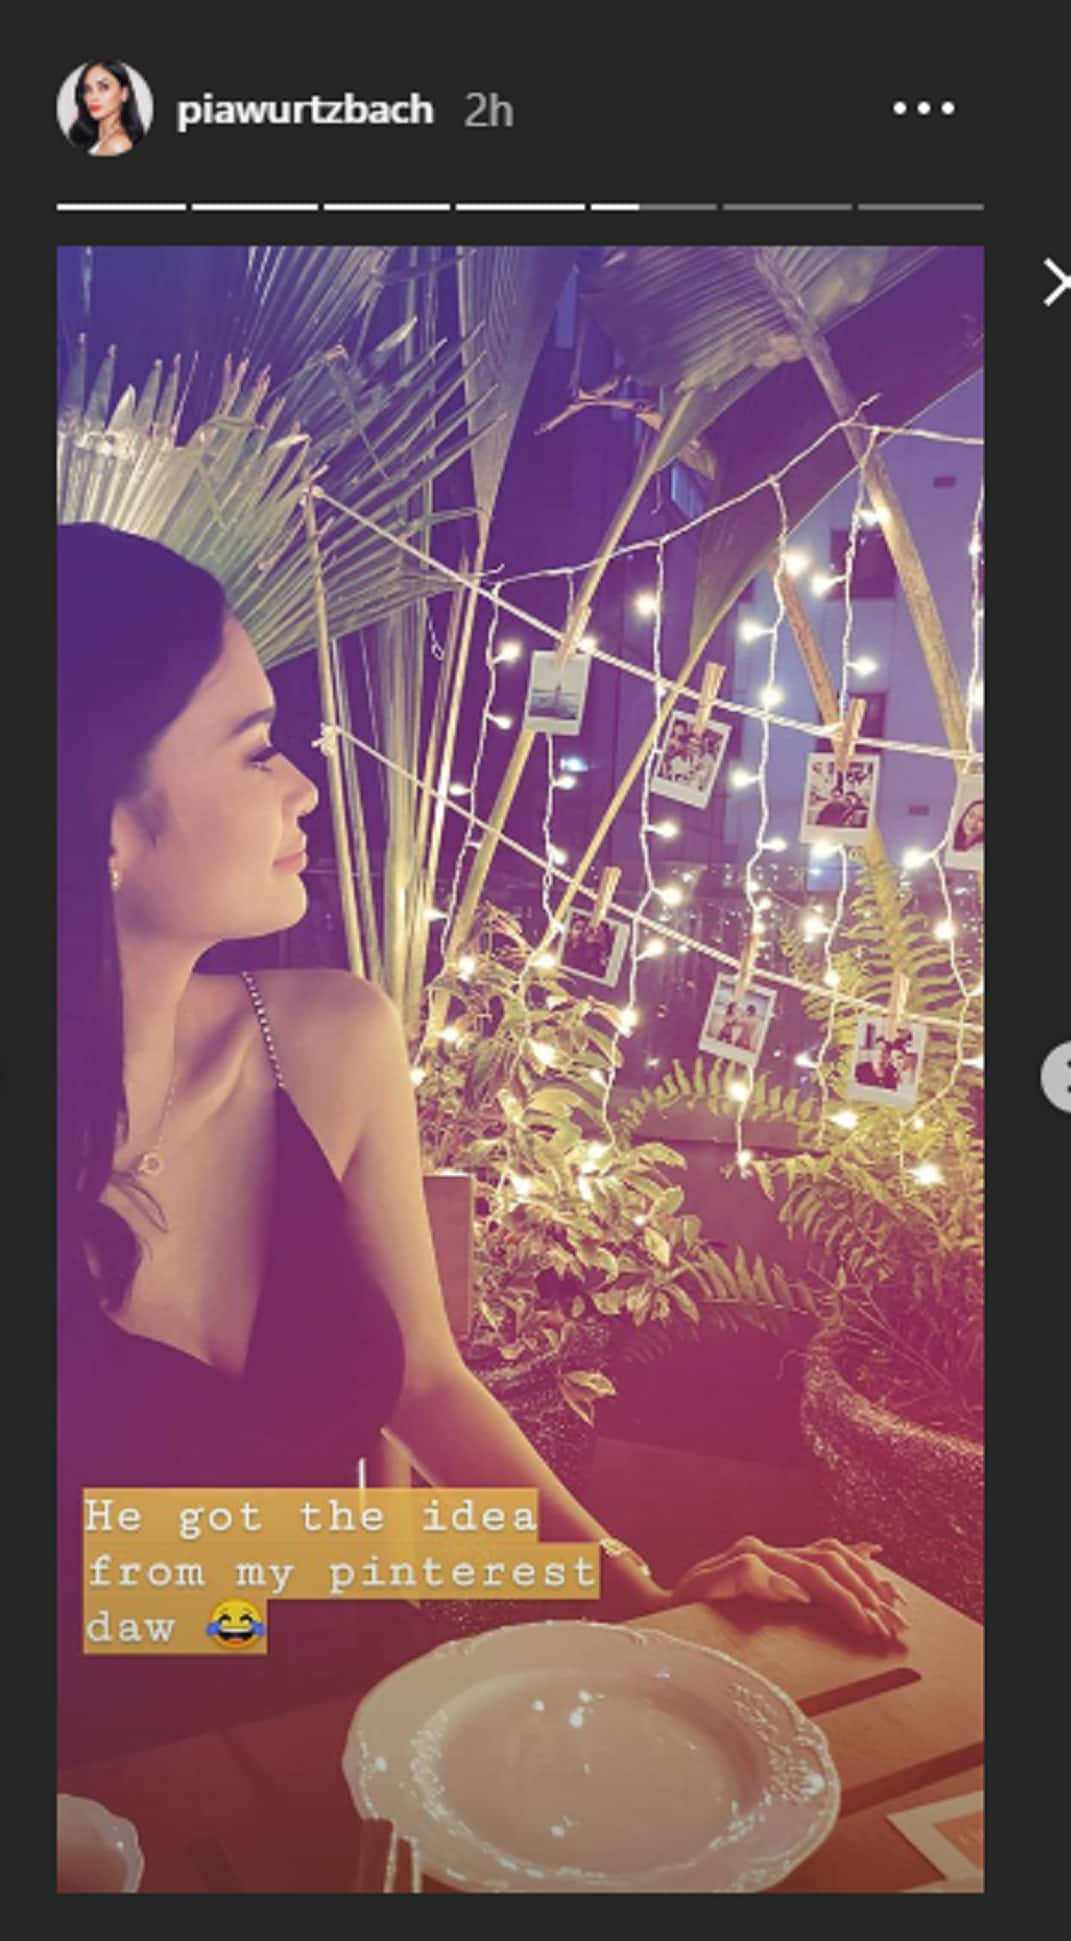 Relationship goals! Pia Wurtzbach and Marlon Stockinger celebrate their 2nd anniversary with a romantic dinner date